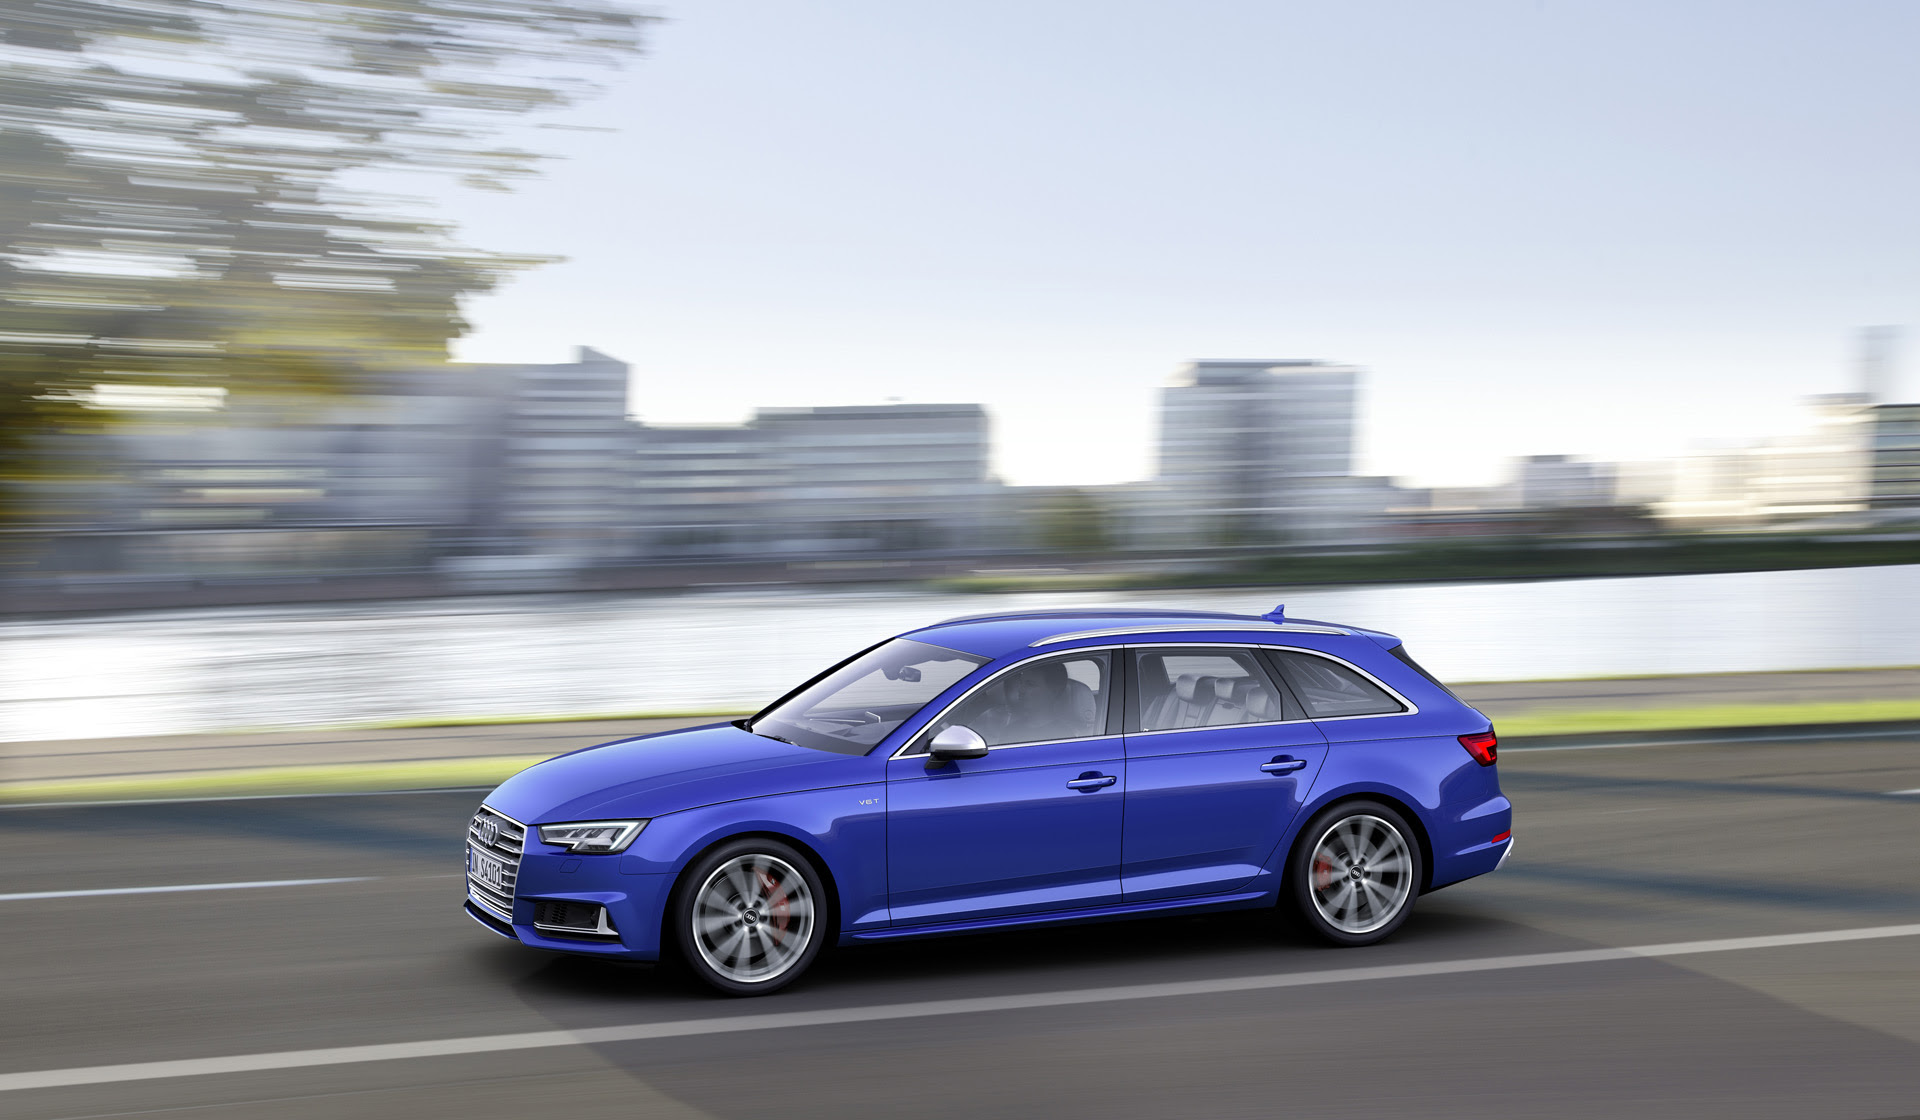 2017 Audi S4 Avant Set For 2016 Geneva Motor Show